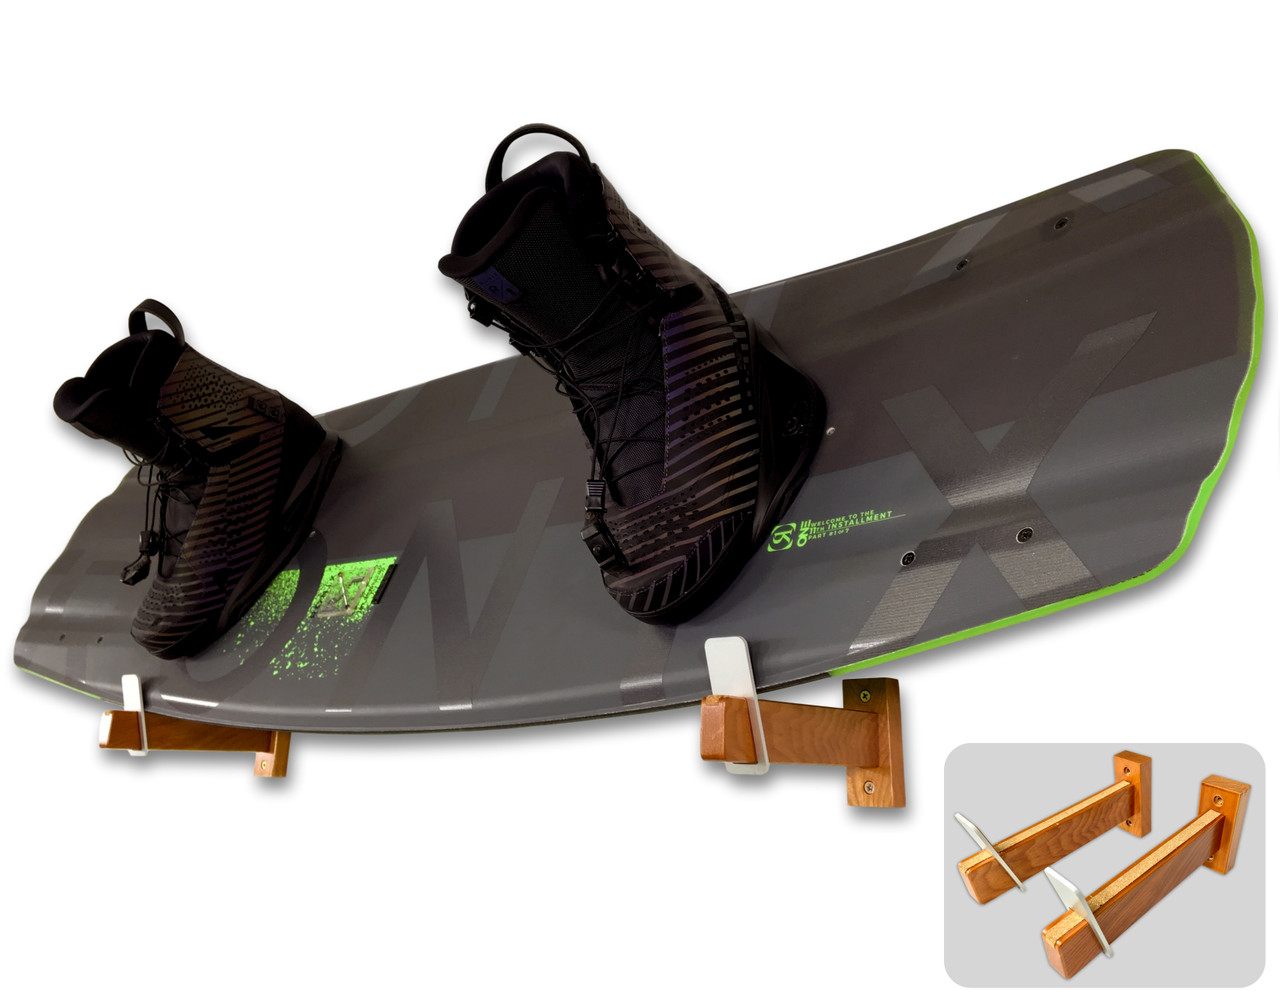 spire naked timber wakeboard wall rack mount display